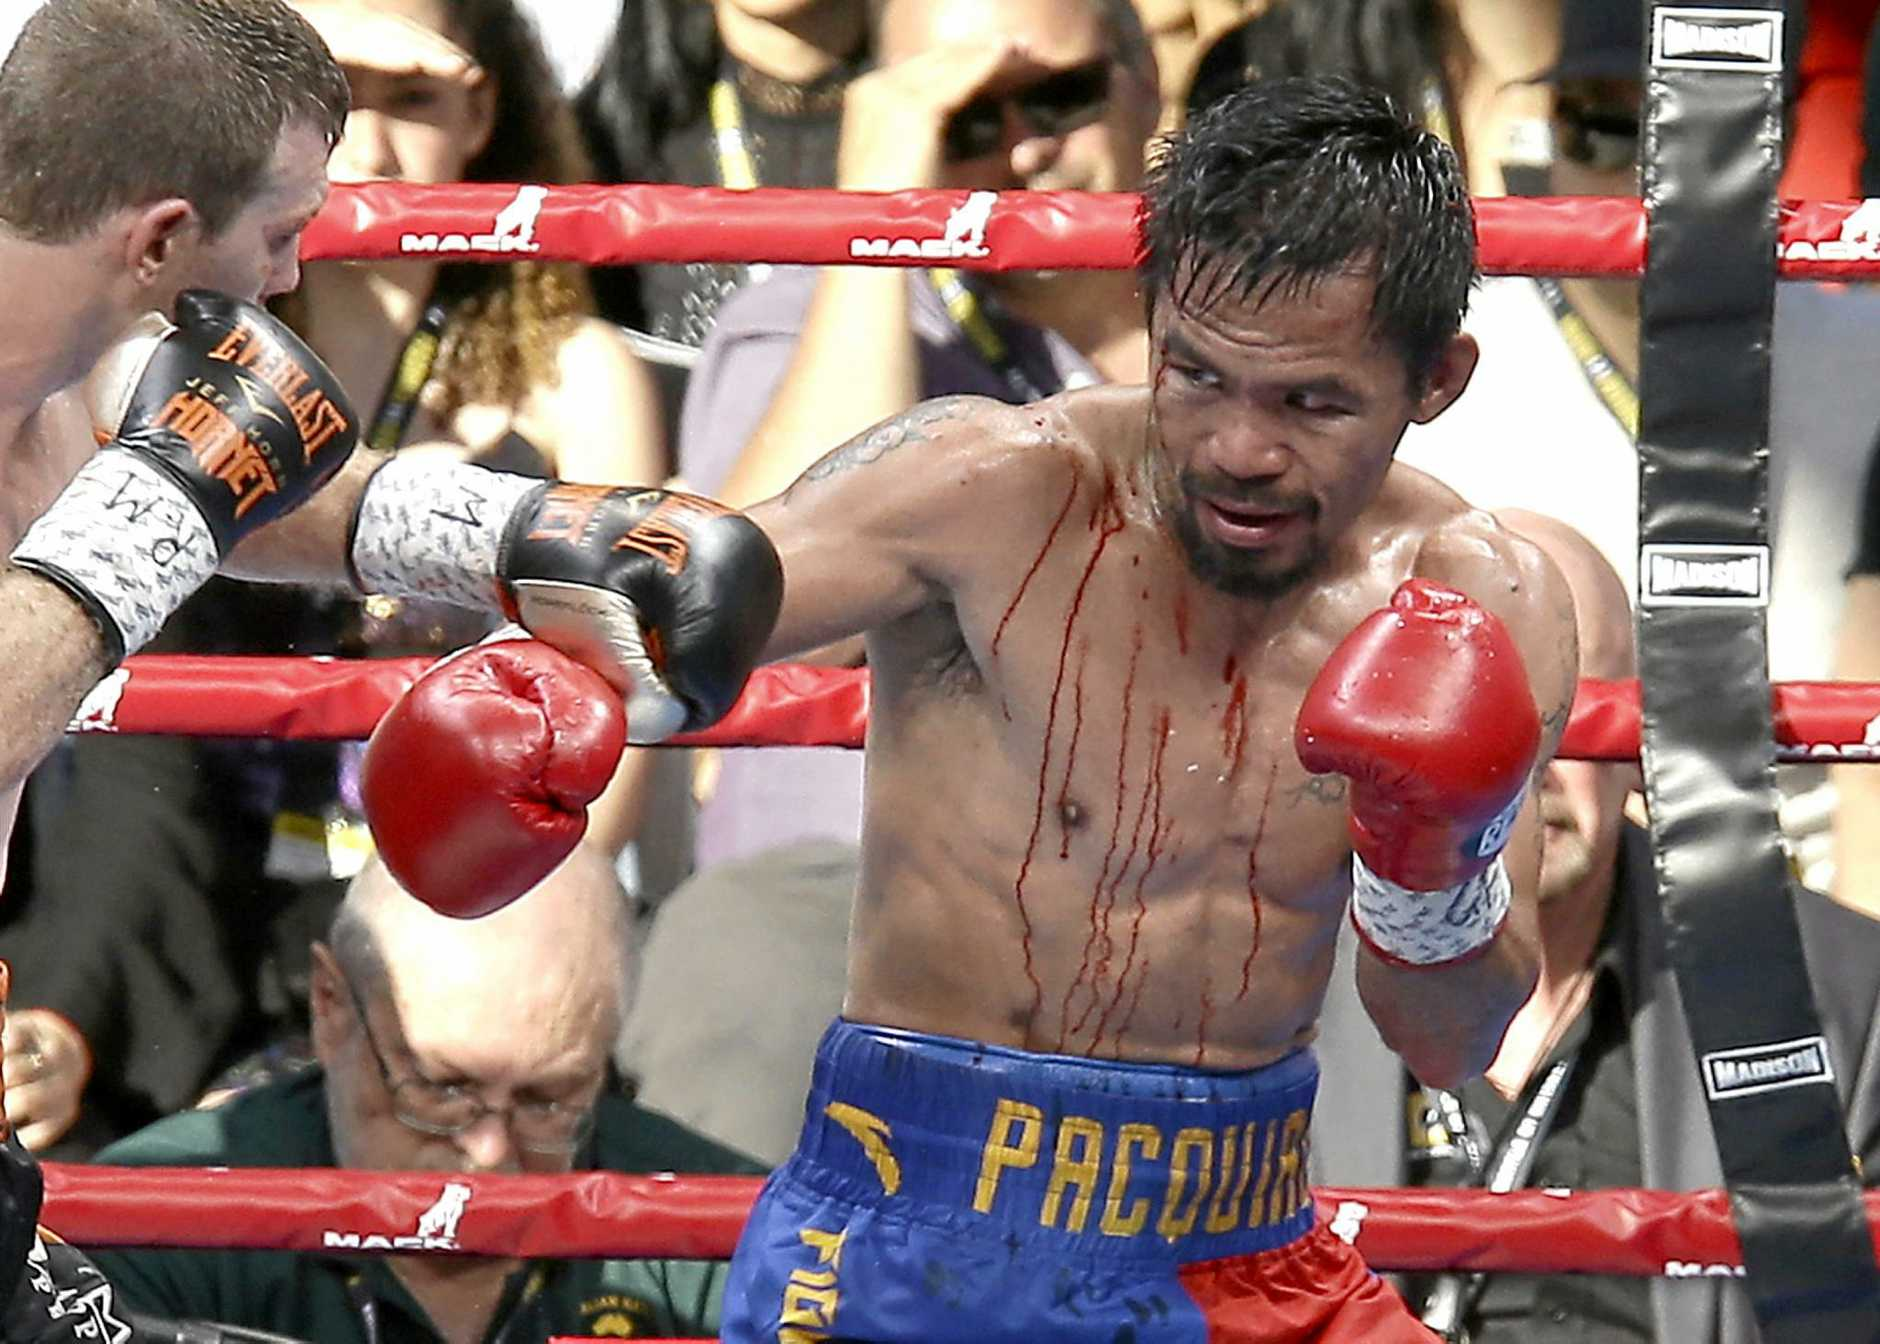 BROKEN MAN: Manny Pacquiao was bloodied and bruised by a determied Jeff Horn during their WBO World welterweight title bout in Brisbane.